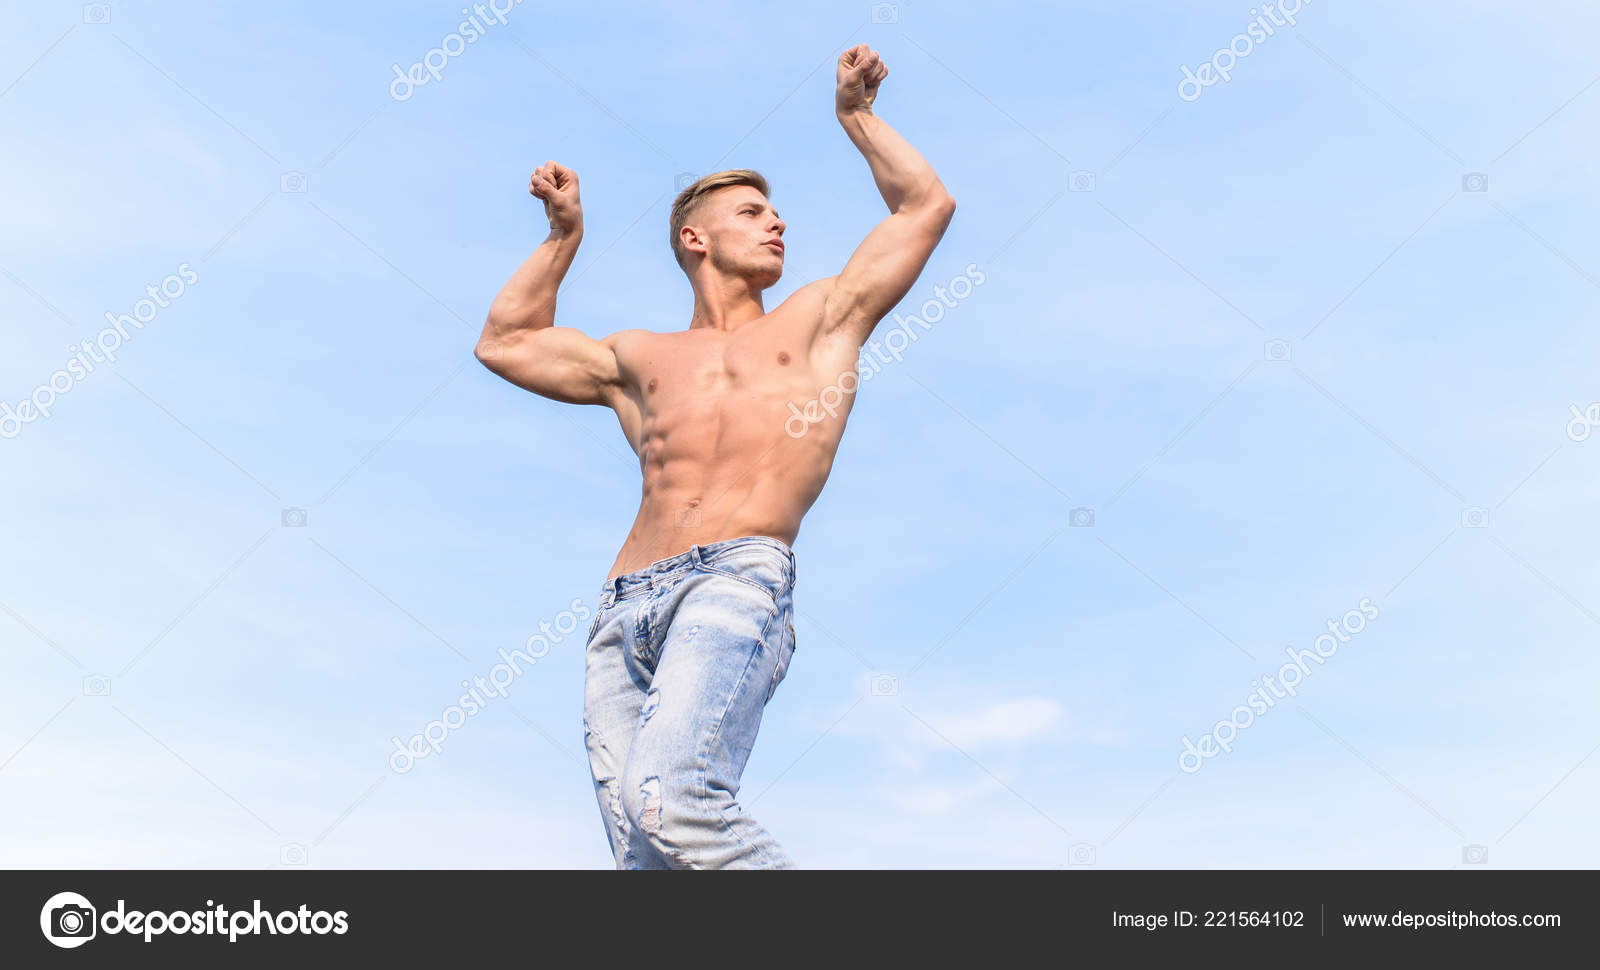 Men body show naked there